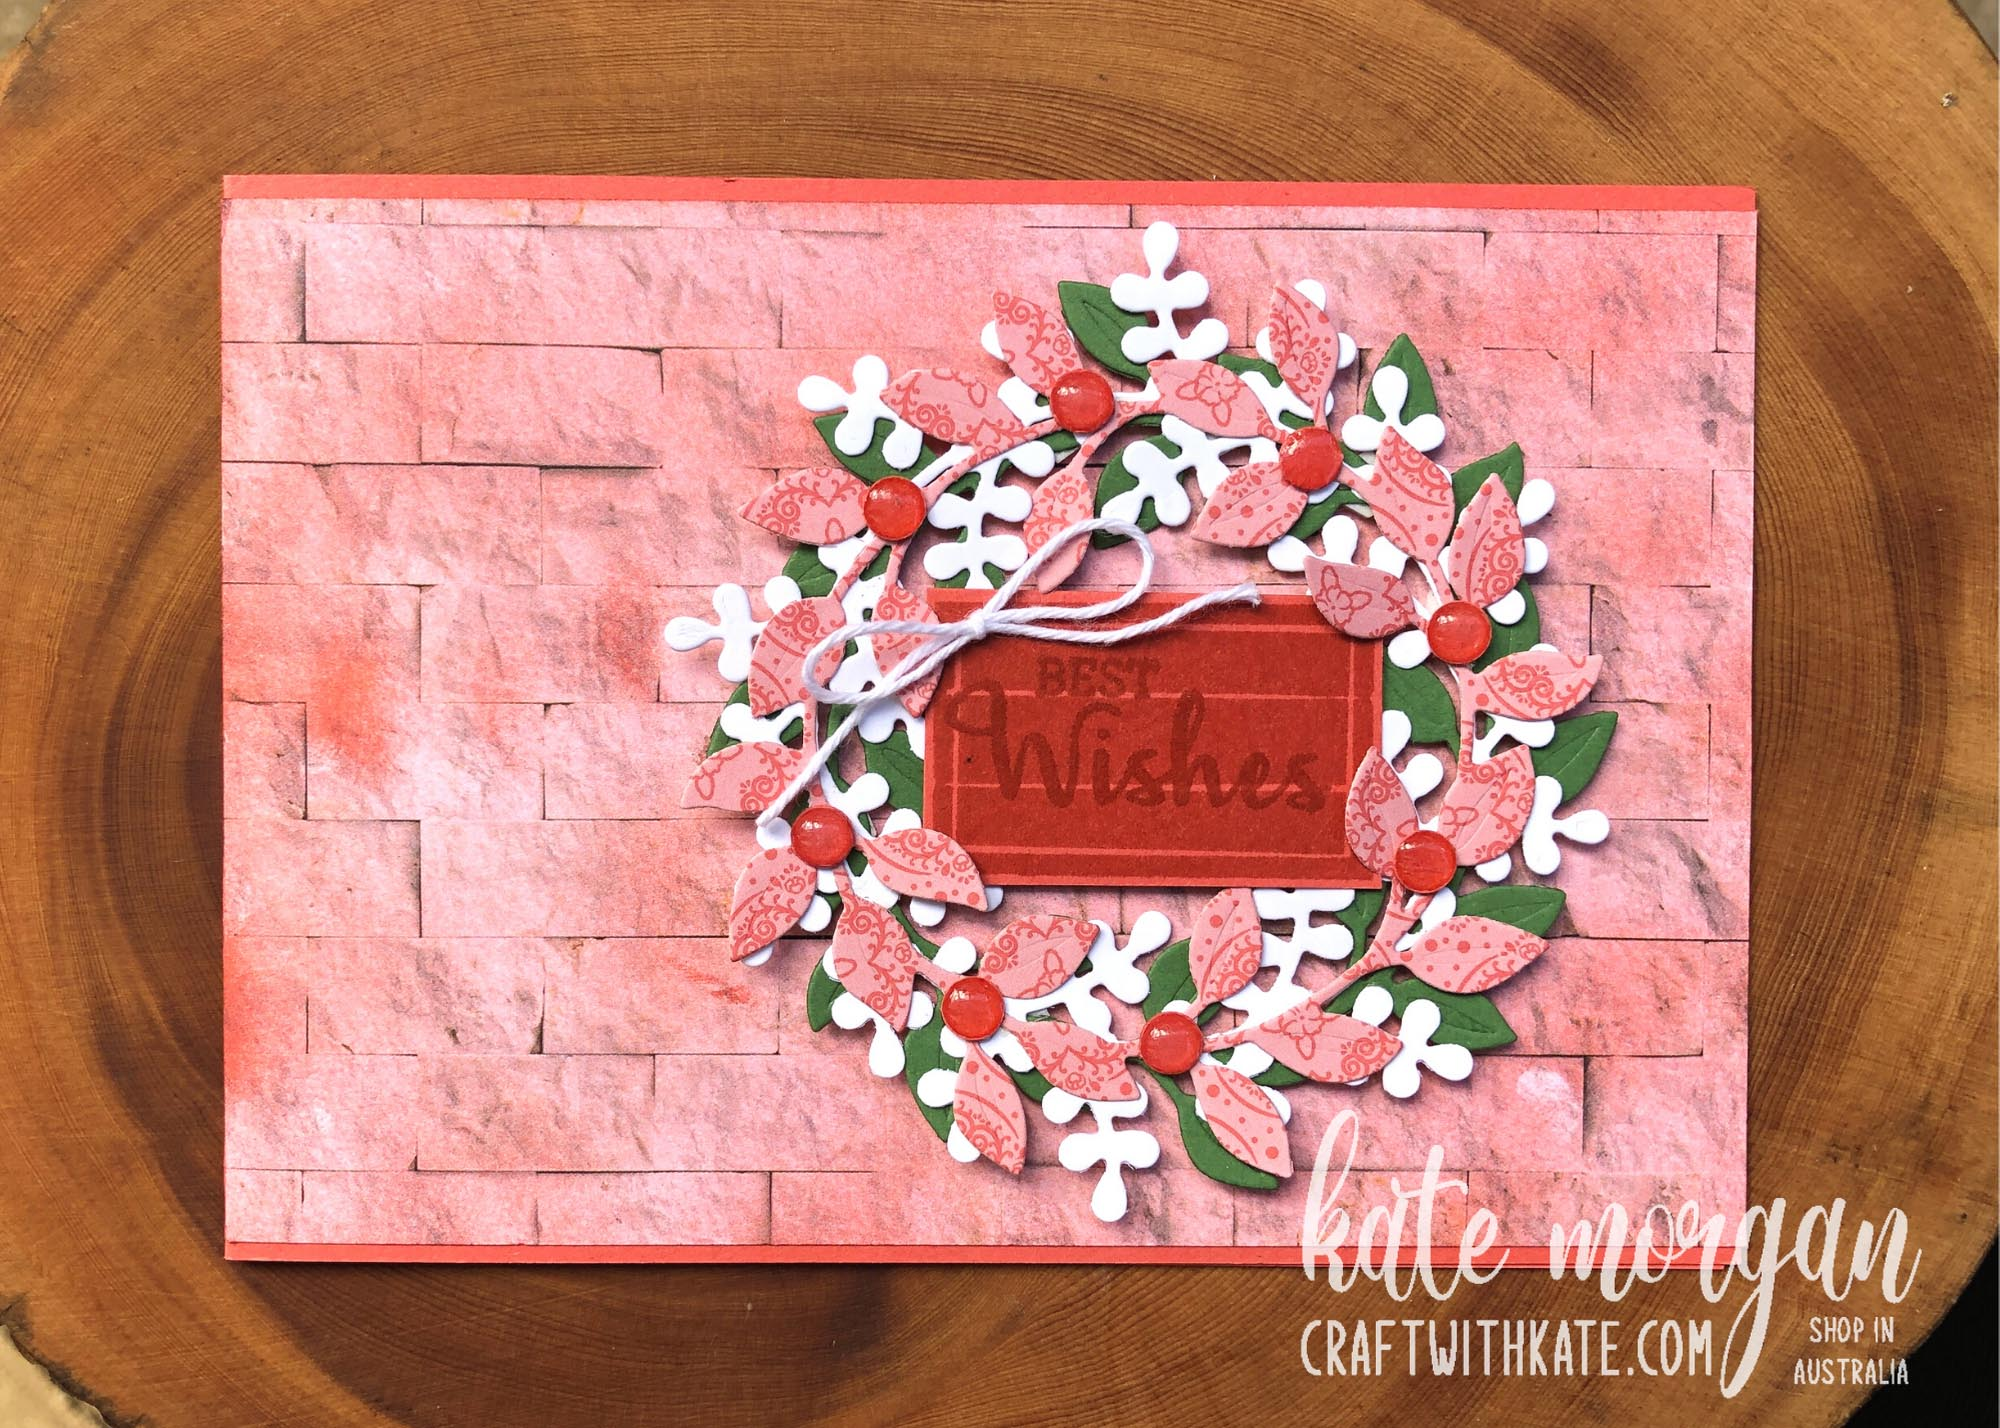 Arrange a Wreath for Colour Creations Showcase Terracotta Tile card Stampin Up by Kate Morgan, Australia 2021.